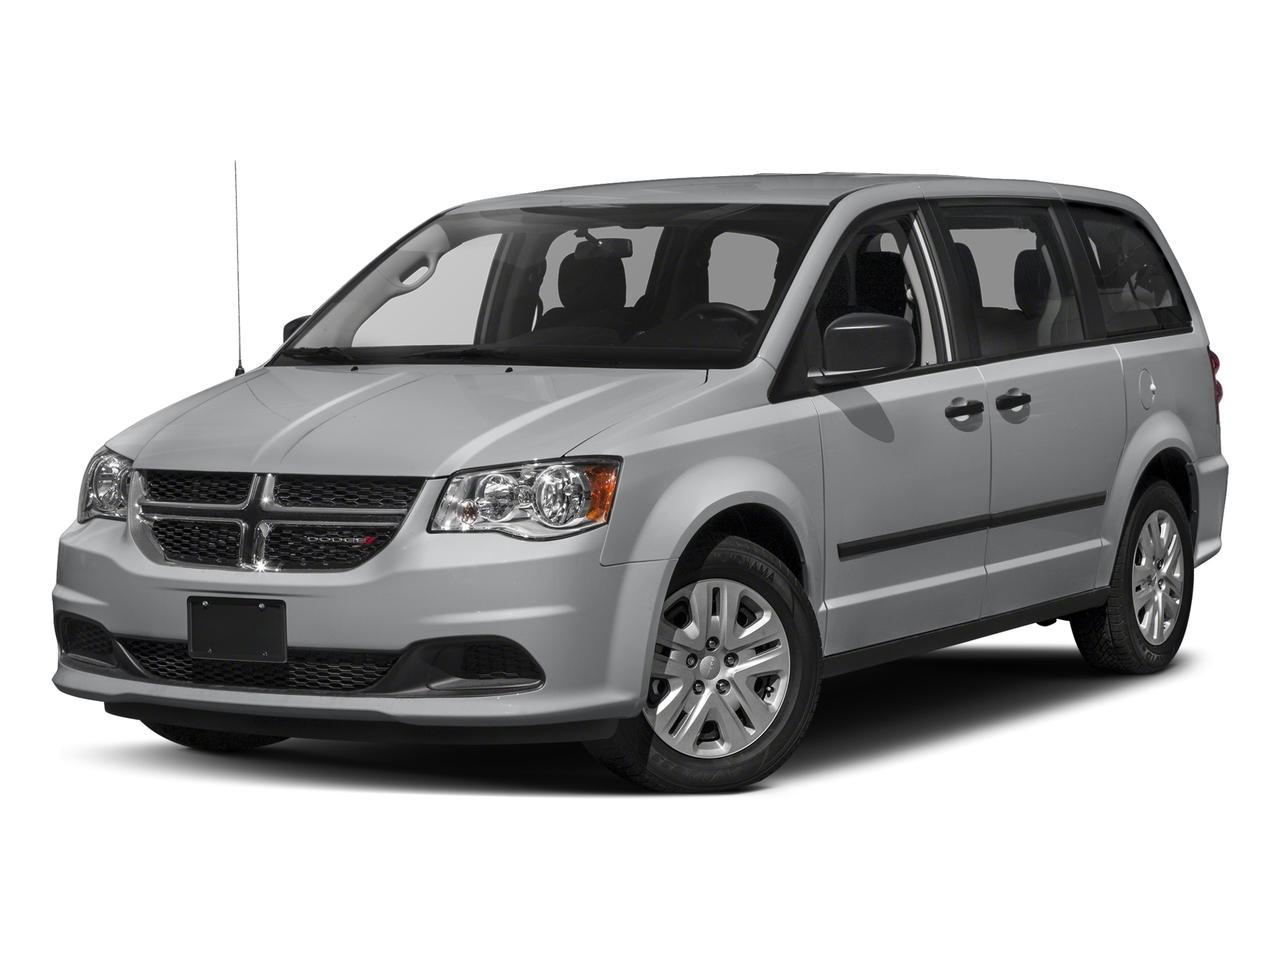 2018 Dodge Grand Caravan Vehicle Photo in CHARLESTON, SC 29407